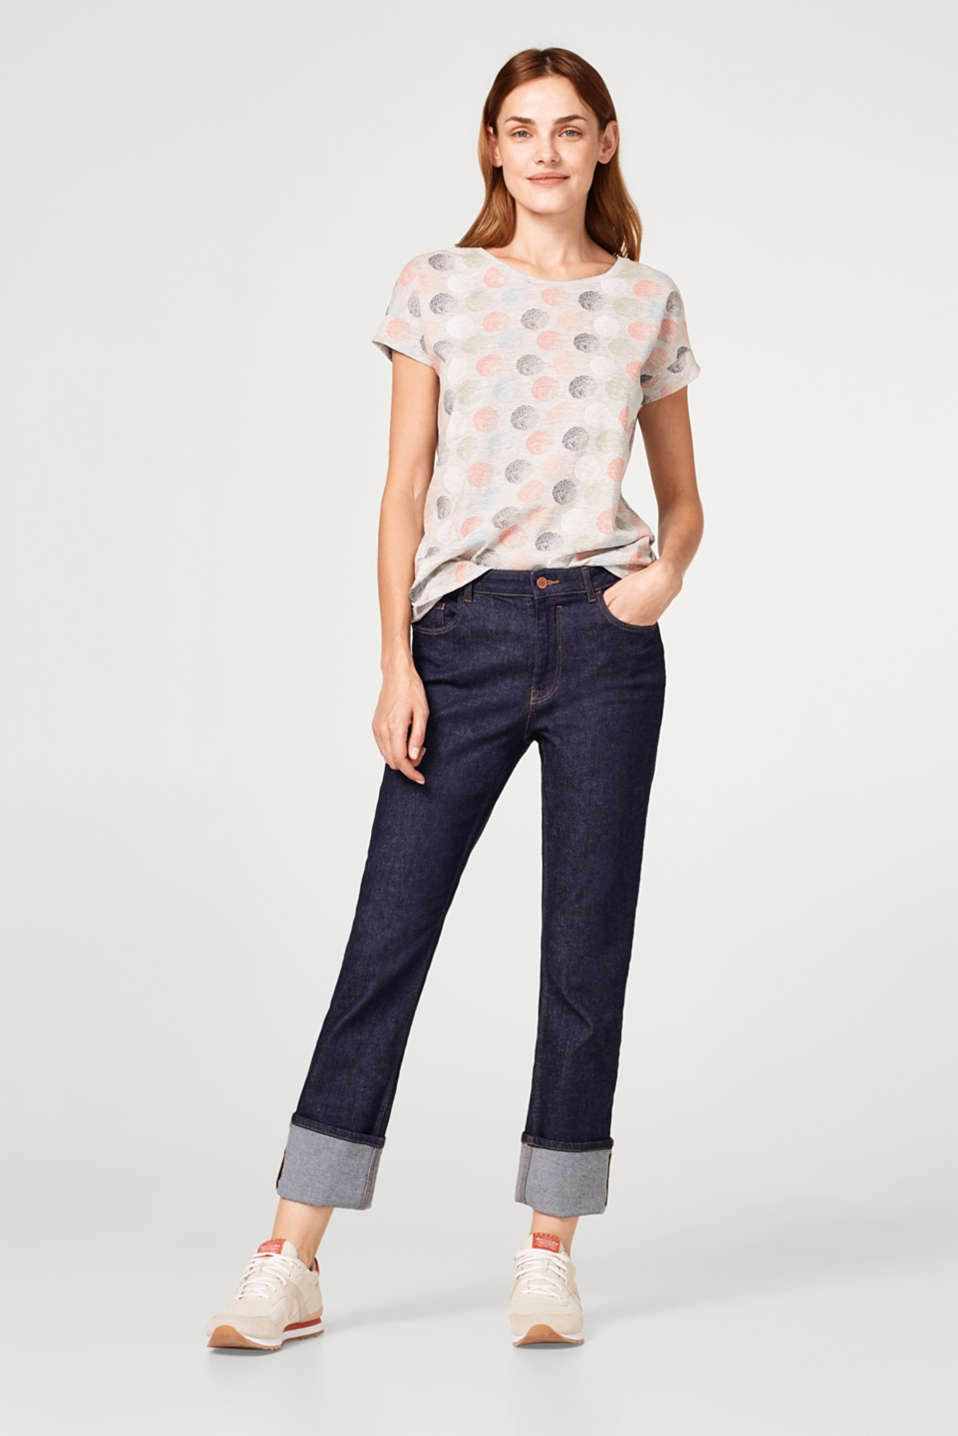 Slub T-shirt with bright graduated polka dots